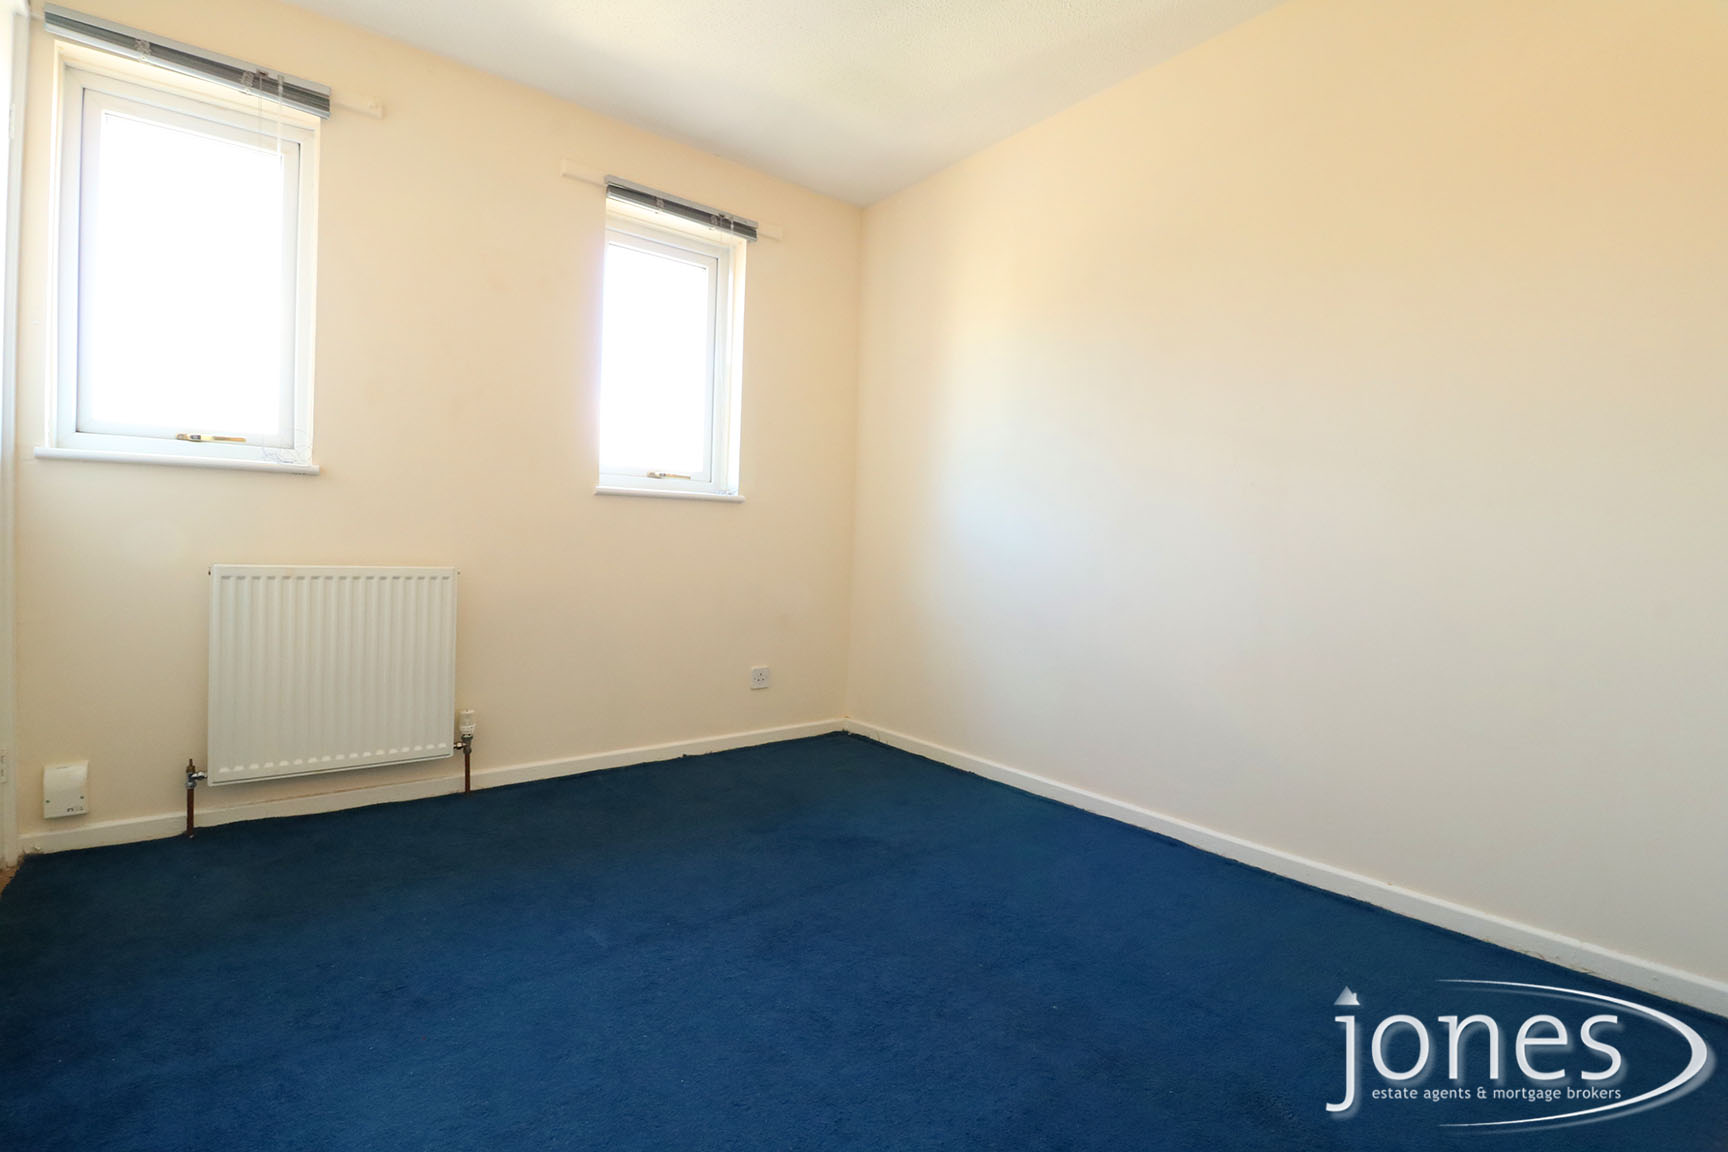 Home for Sale Let - Photo 05 Stanley Close,Thornaby, Stockton on Tees, TS17 6PP